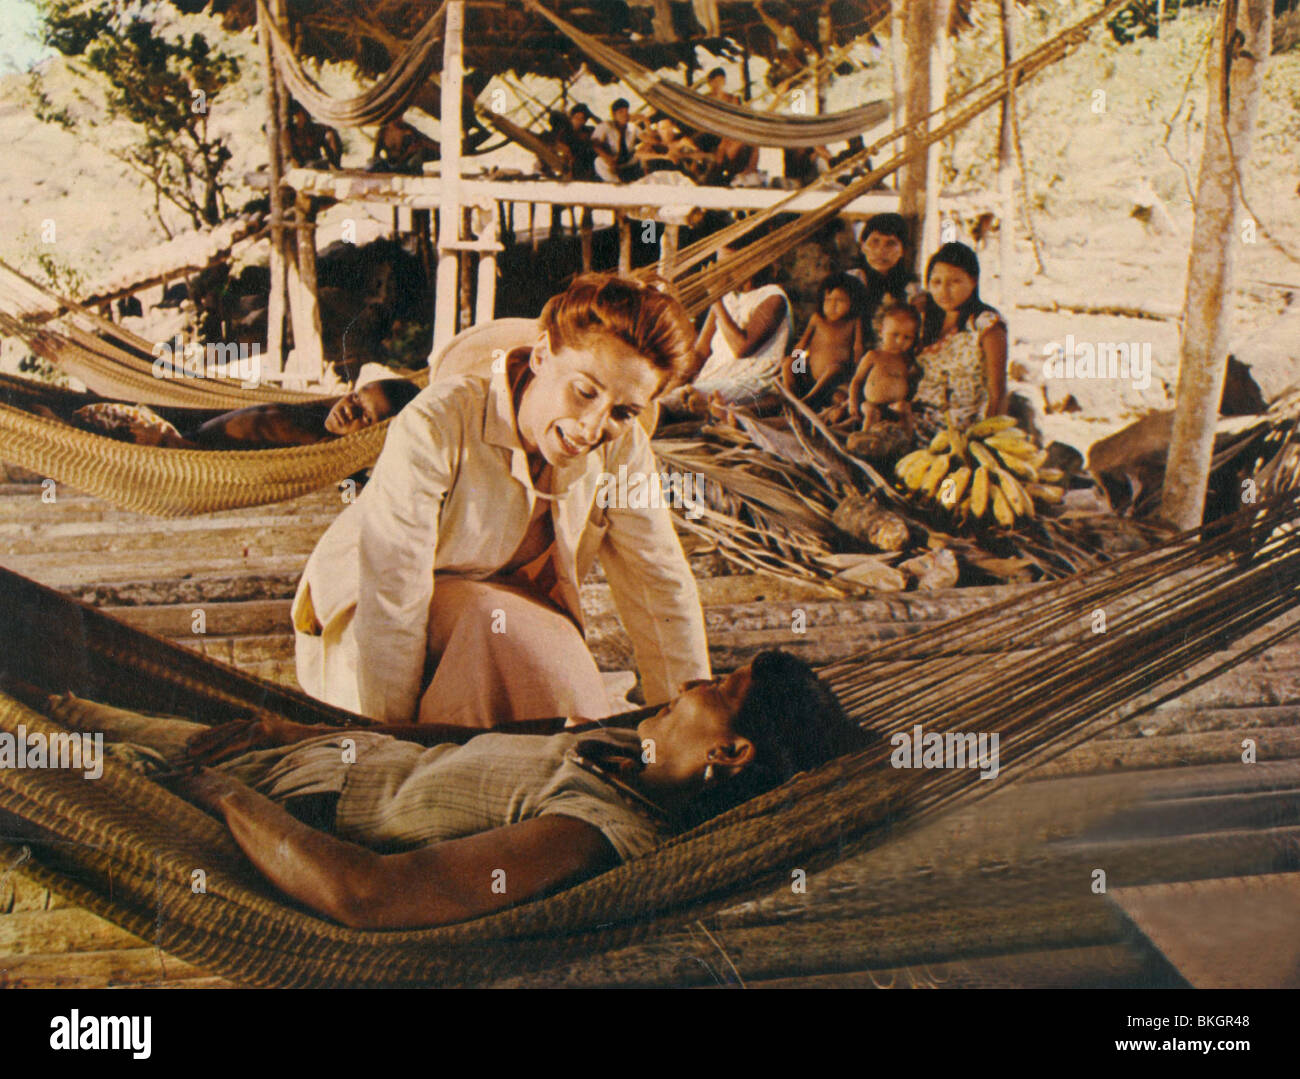 MURPHY'S WAR SIAN PHILLIPS - Stock Image